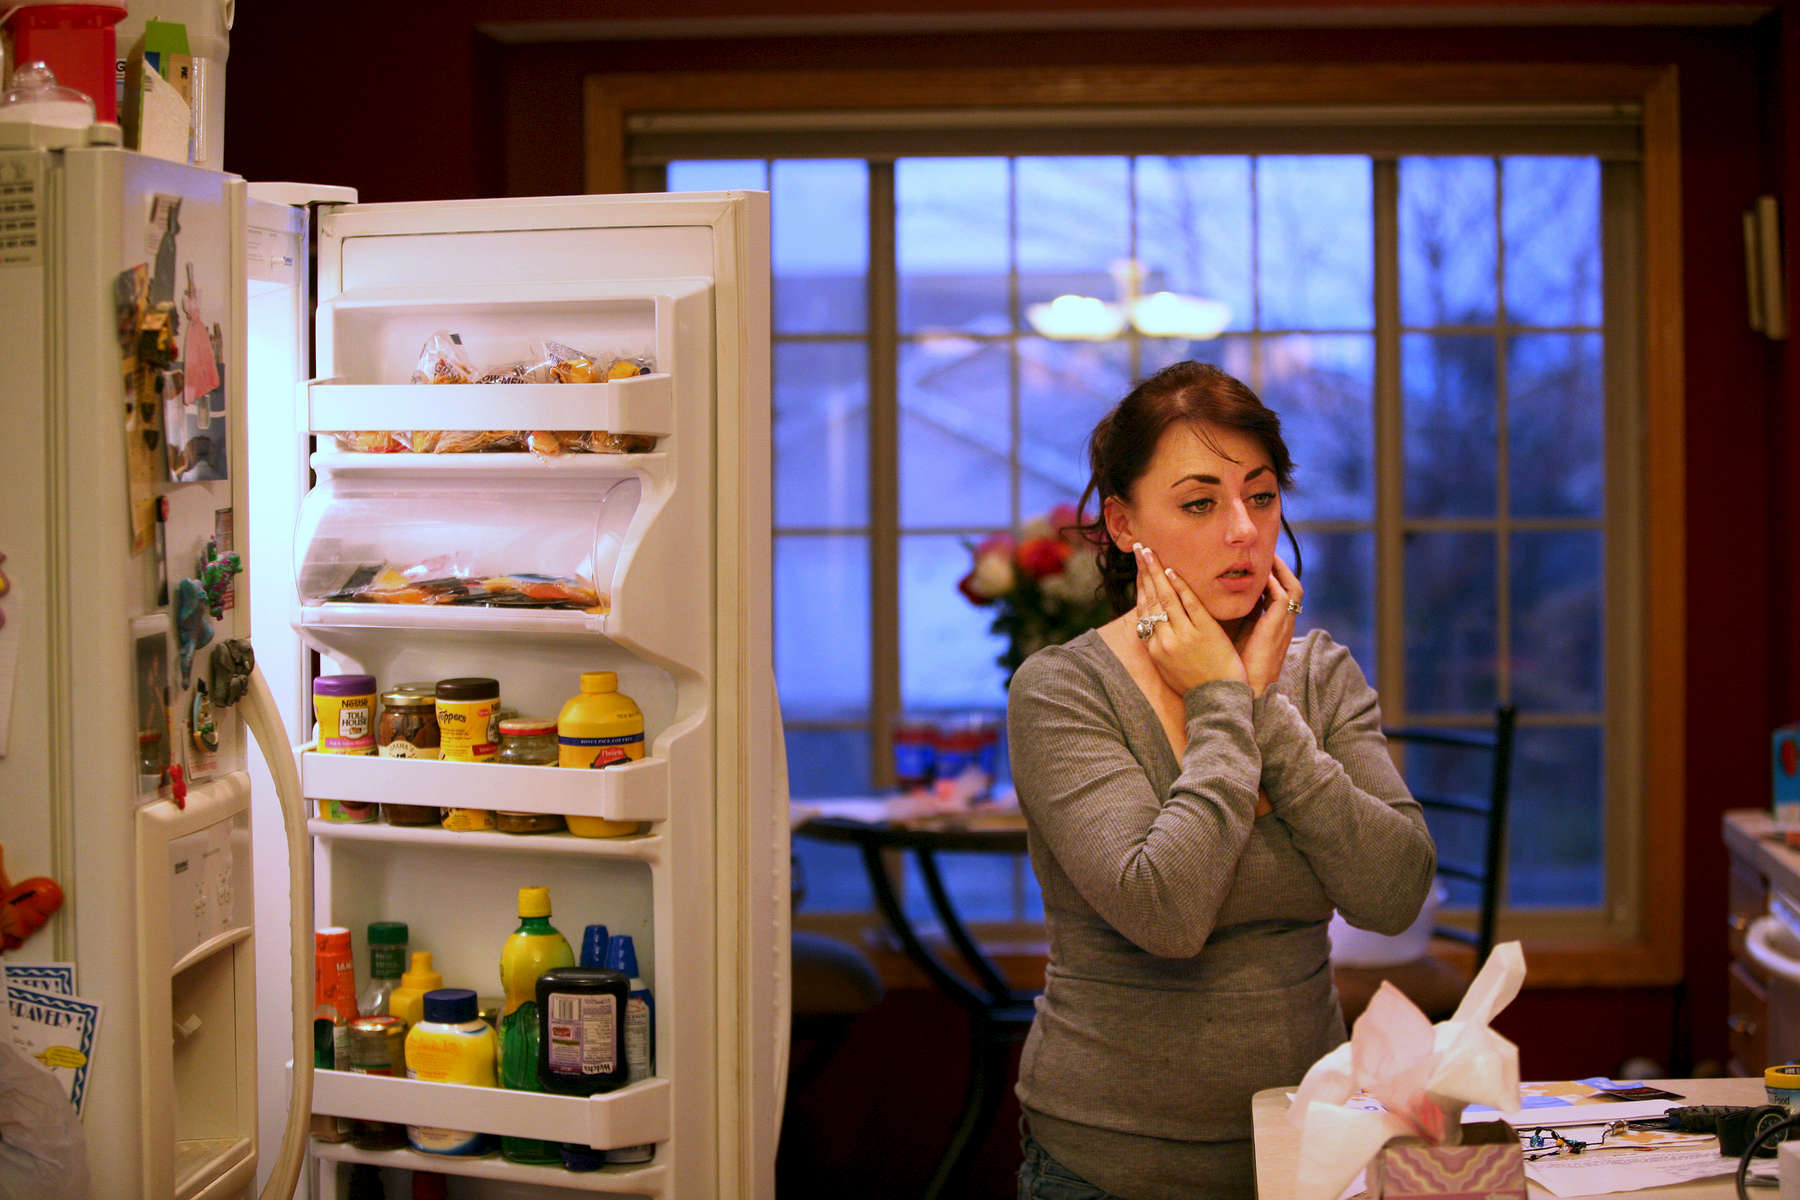 Jenny Muñoz pauses in her kitchen while preparing a meal for her daughters in St. Francis, Minn. With her husband serving overseas on his second tour with the National Guard, Muñoz often felt the stress of raising two daughters while working more than 50 hours a week.